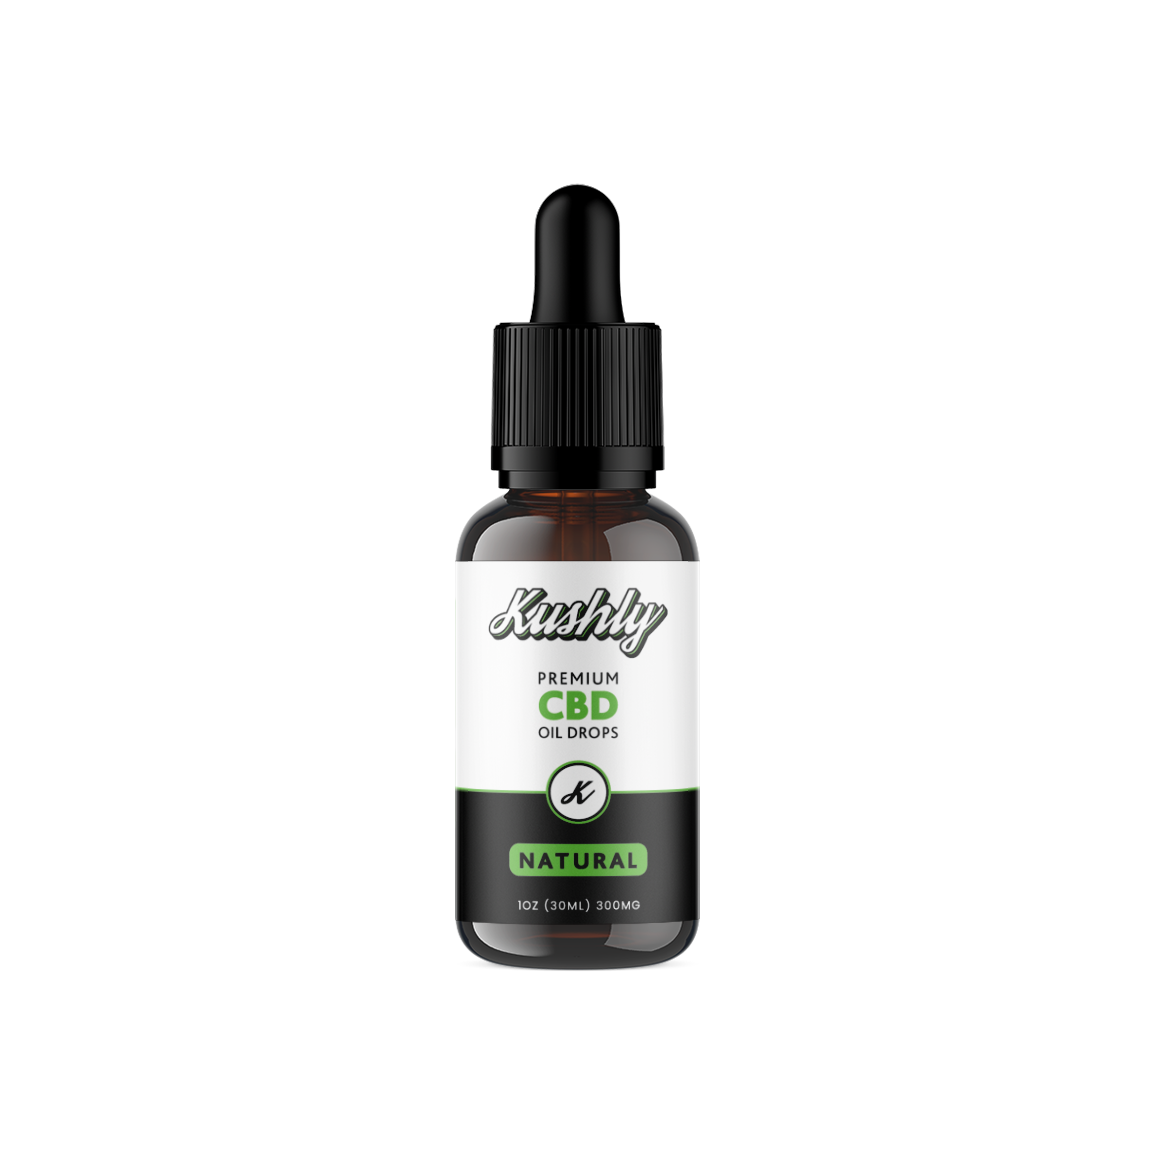 Kushly CBD Oil, Natural